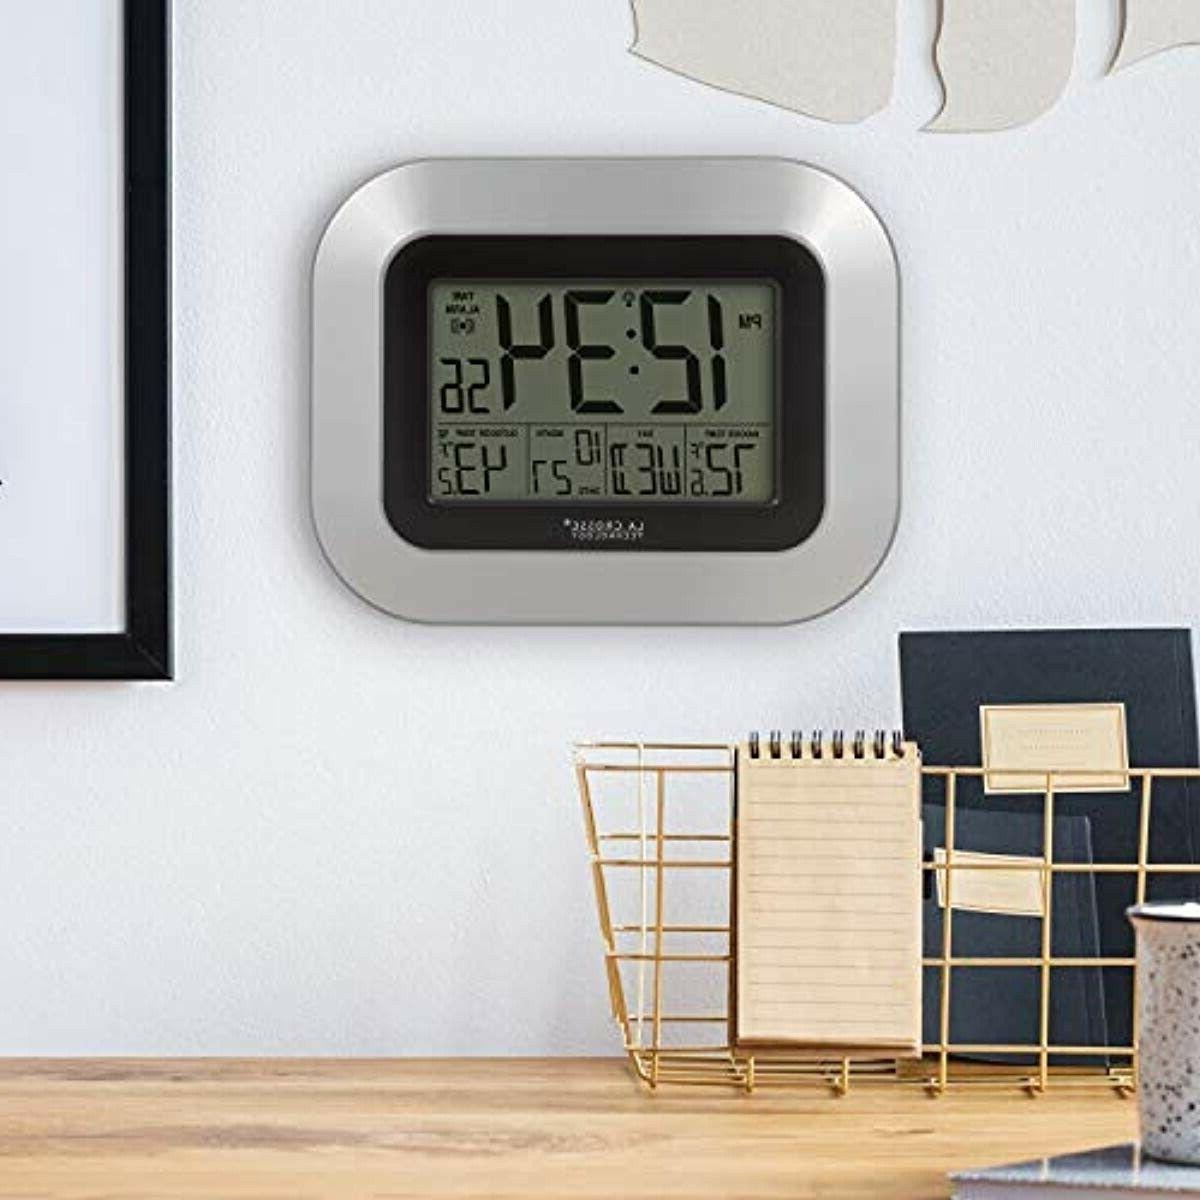 WS-8115U-S-INT Atomic Clock with Indoor Outdoor